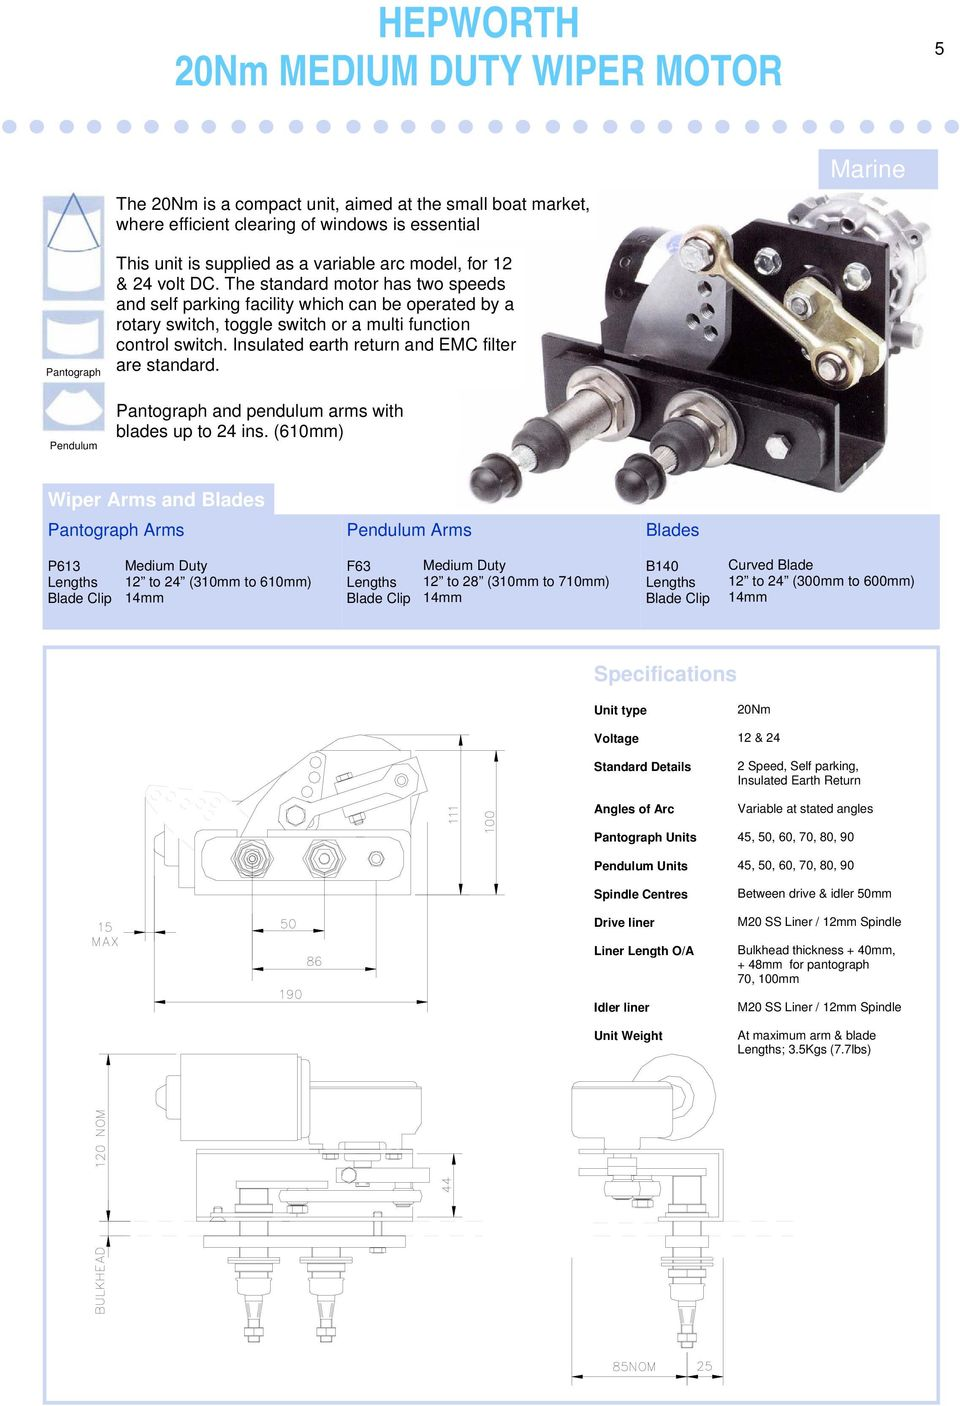 Windscreen Wiper Catalogue Pdf Wiring Of 12 Volt 2speed Steeringcolumnmounted Switch Insulated Earth Return And Emc Filter Are Standard Pantograph Pendulum Arms With Blades Up